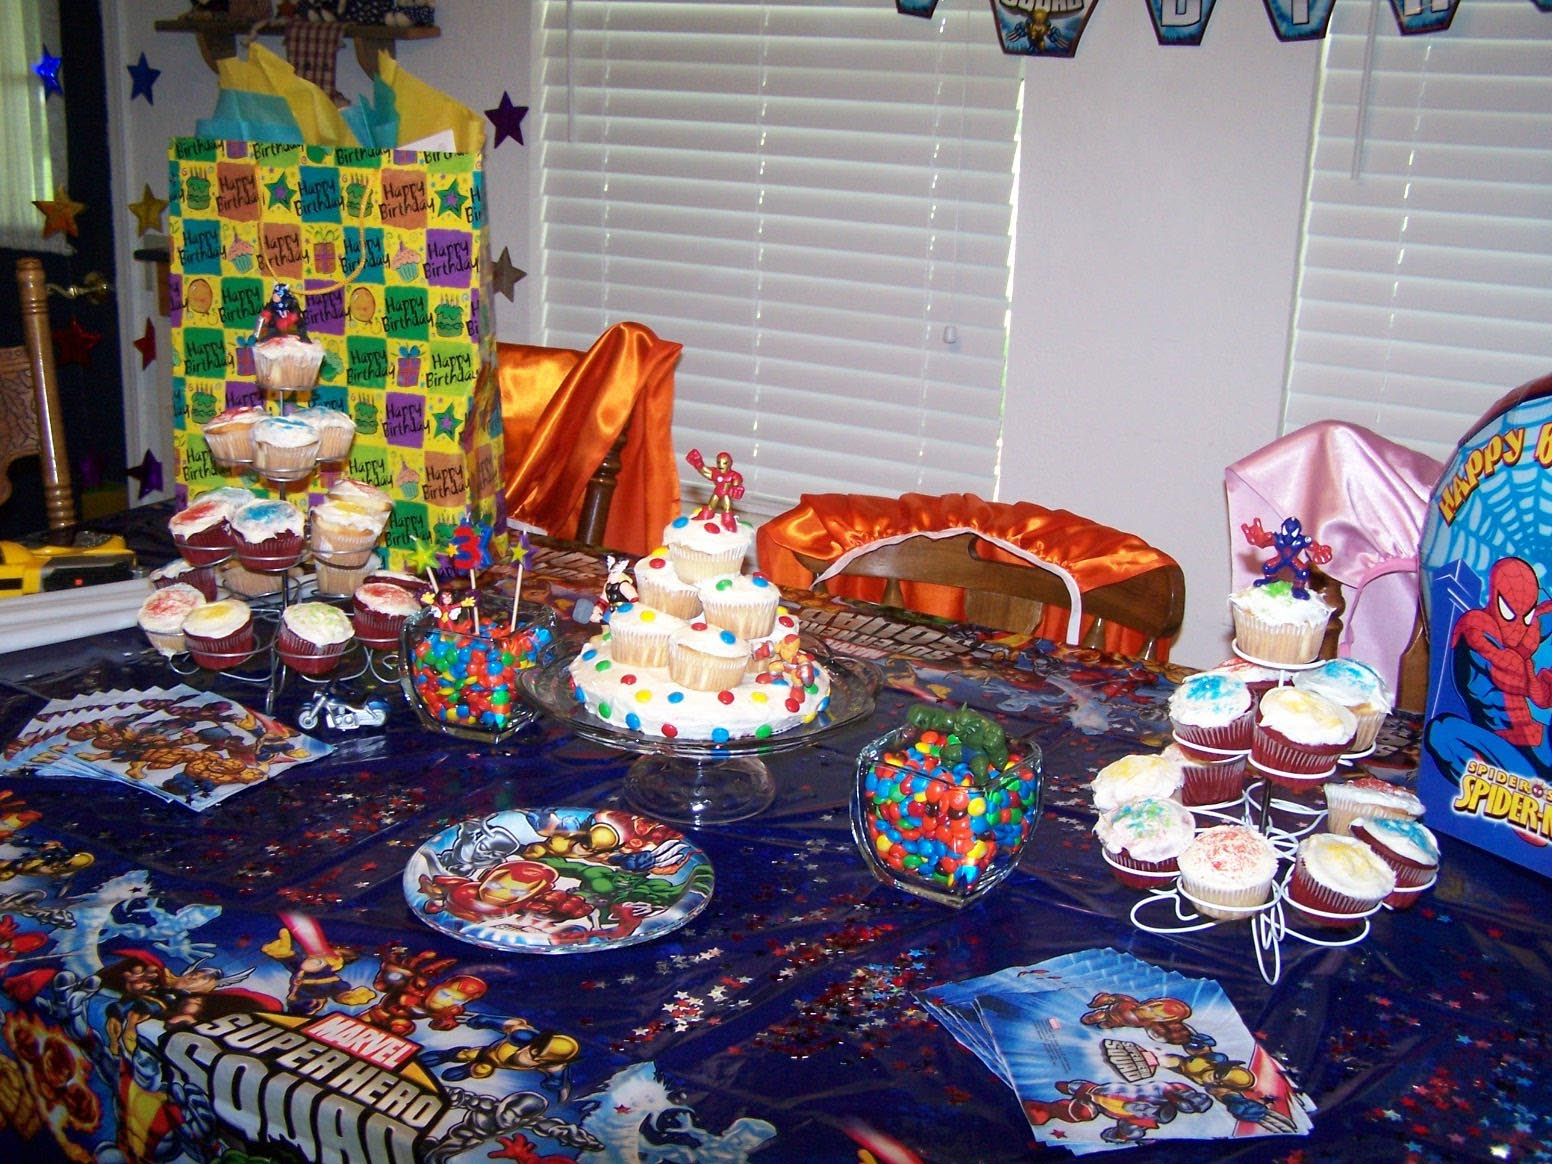 Find The Right Kids Party Decorations For Your Fest  Home. Living Room Chandler Ladies Night. Green Living Room Game. Cheap Living Room Renovation Ideas. 3 Pc Leather Living Room Set. Wall Mounted Living Room Storage. Living Room Wall Finish Ideas. Rectangular Living Room Table. Cottage Living Room Furniture For Sale